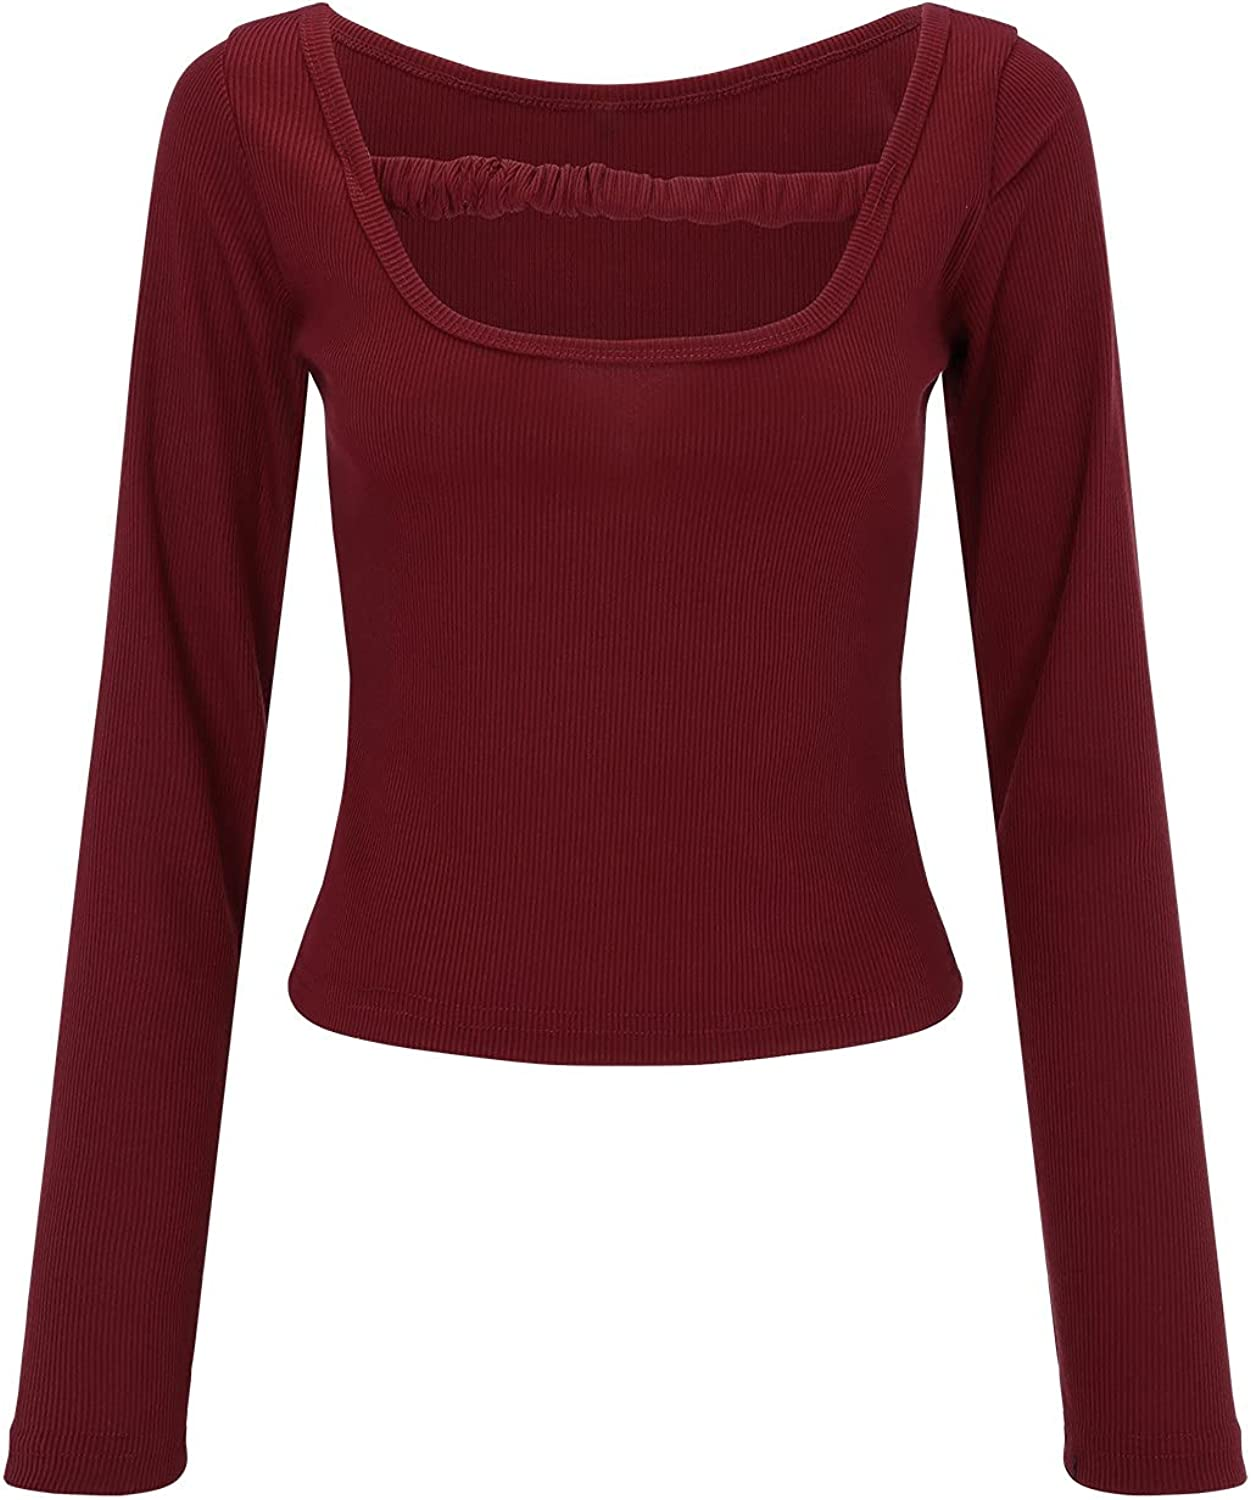 Hemlock Women Sexy V Neck Sweaters Slim Jumper Pullovers Knit Tunic Blouse Solid Color Sweater Lady Work Blouse